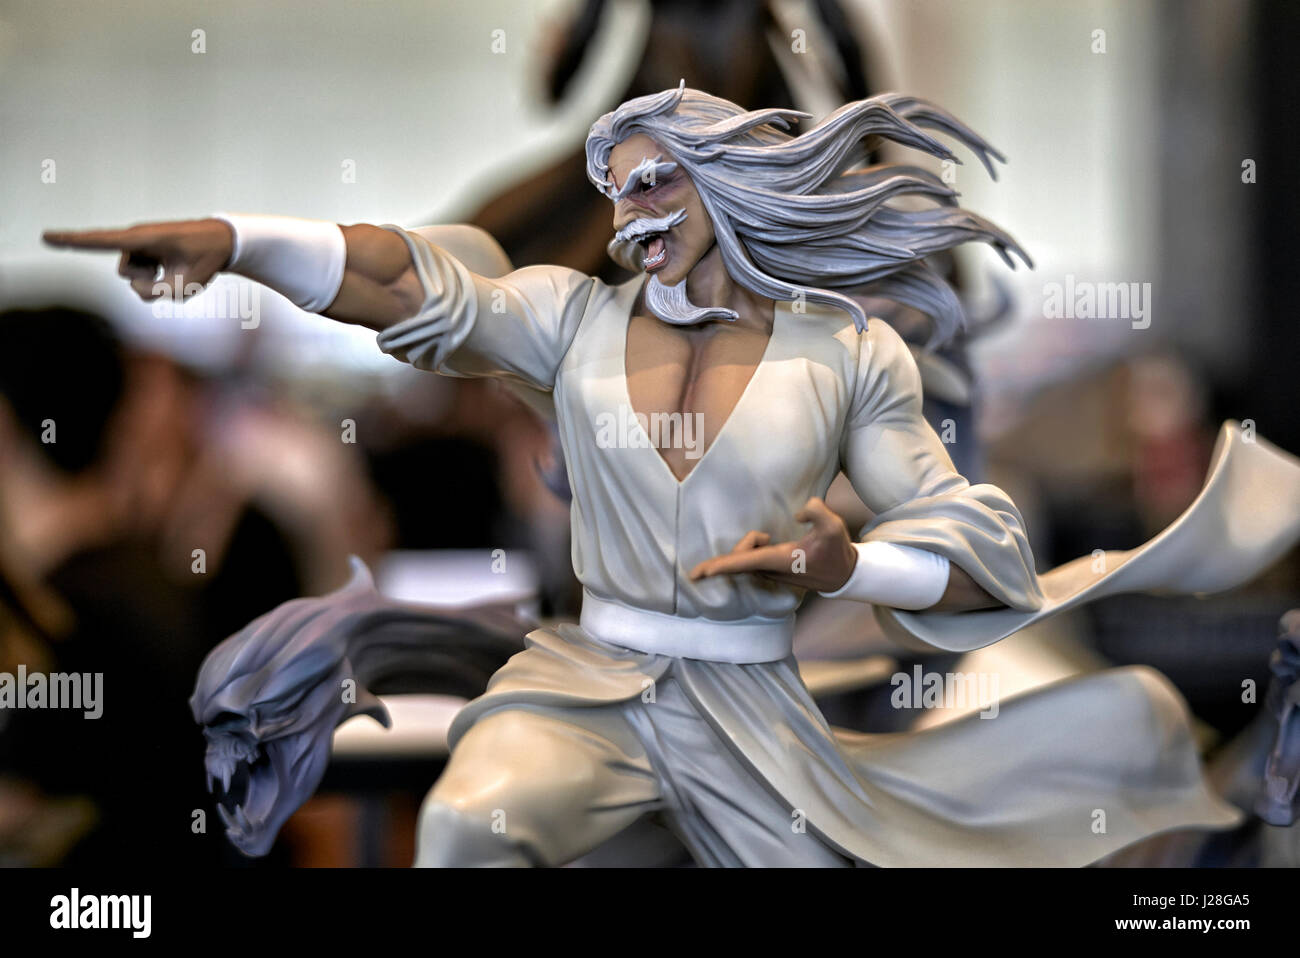 Super Hero and Comic book hero statue on display at a Cosplay event, Bangkok, Thailand, 2017 - Stock Image